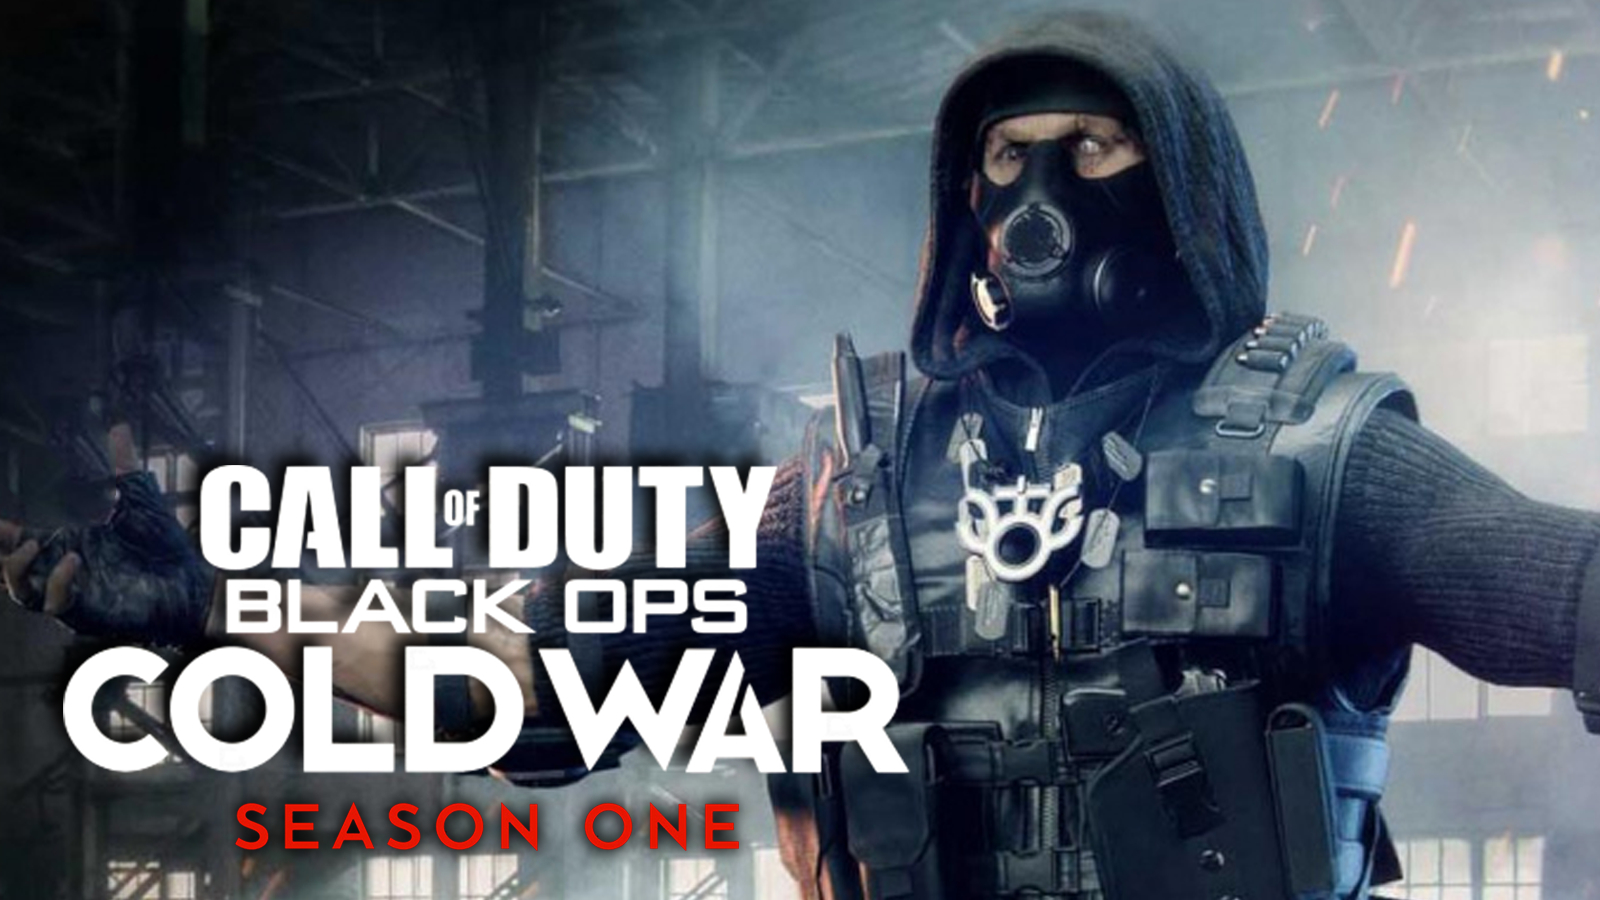 Warzone op Stitch looms over the Black Ops Cold War Season 1 logo.